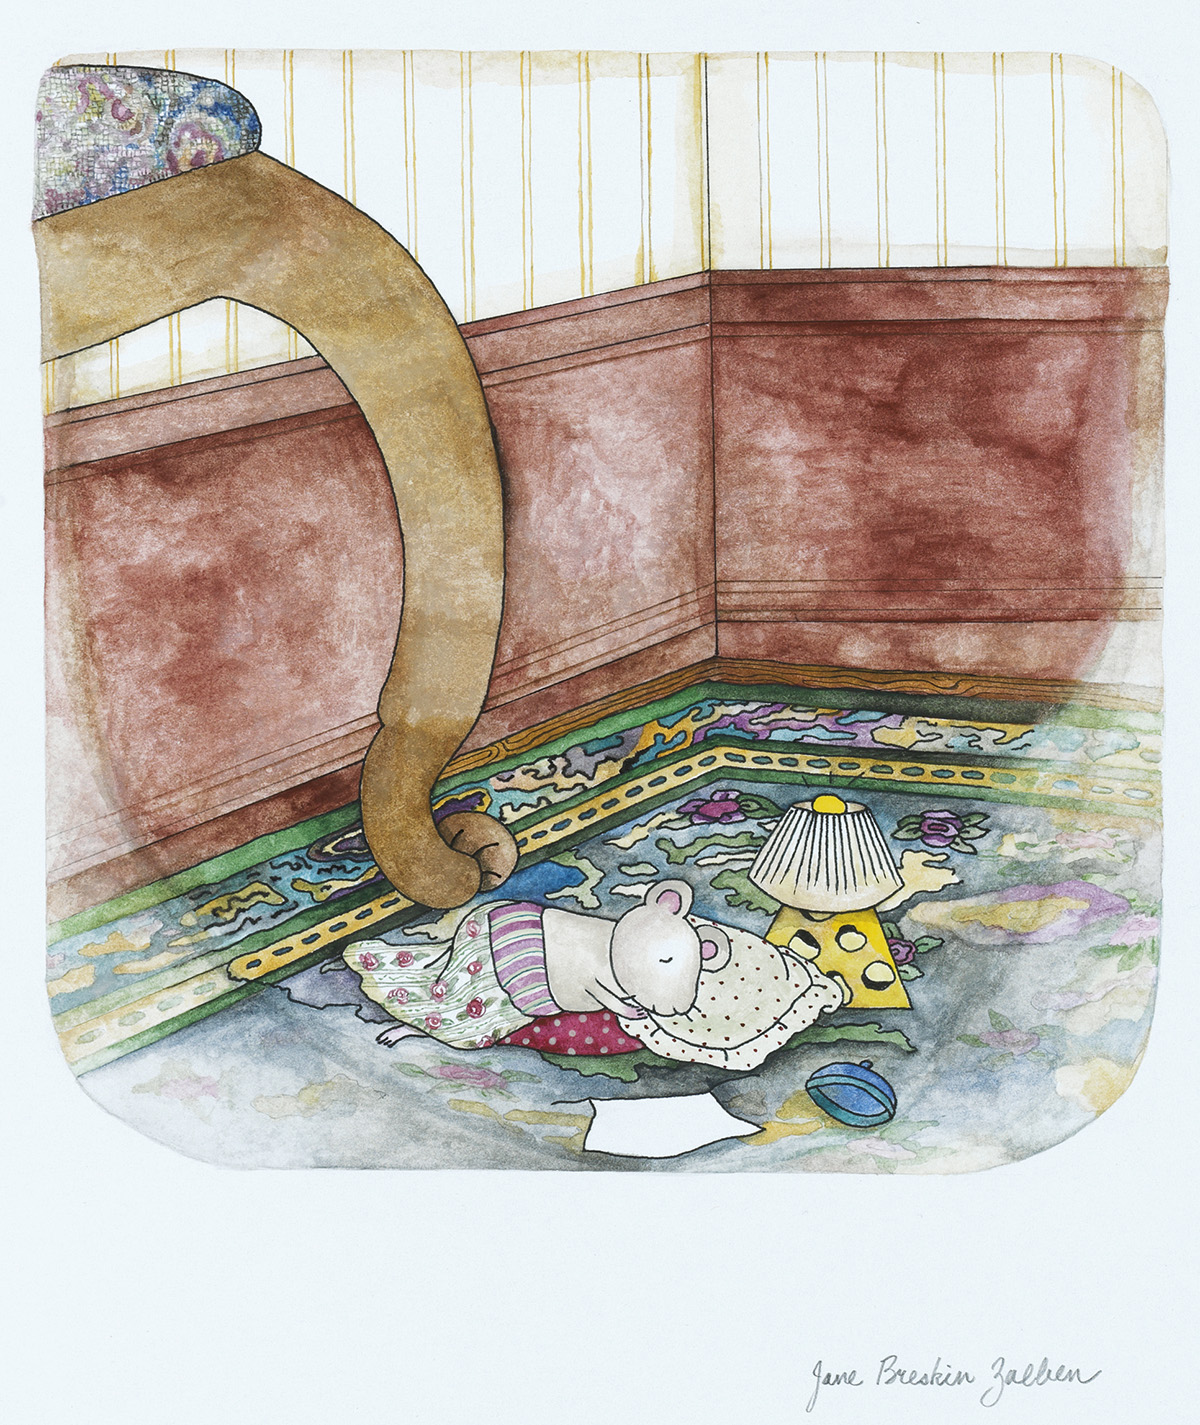 CHILDRENS MOUSE JANE BRESKIN ZALBEN. Janson Lived in a Museum, Tucked into the Corner of a Room Filled with Beautiful Old Furniture.